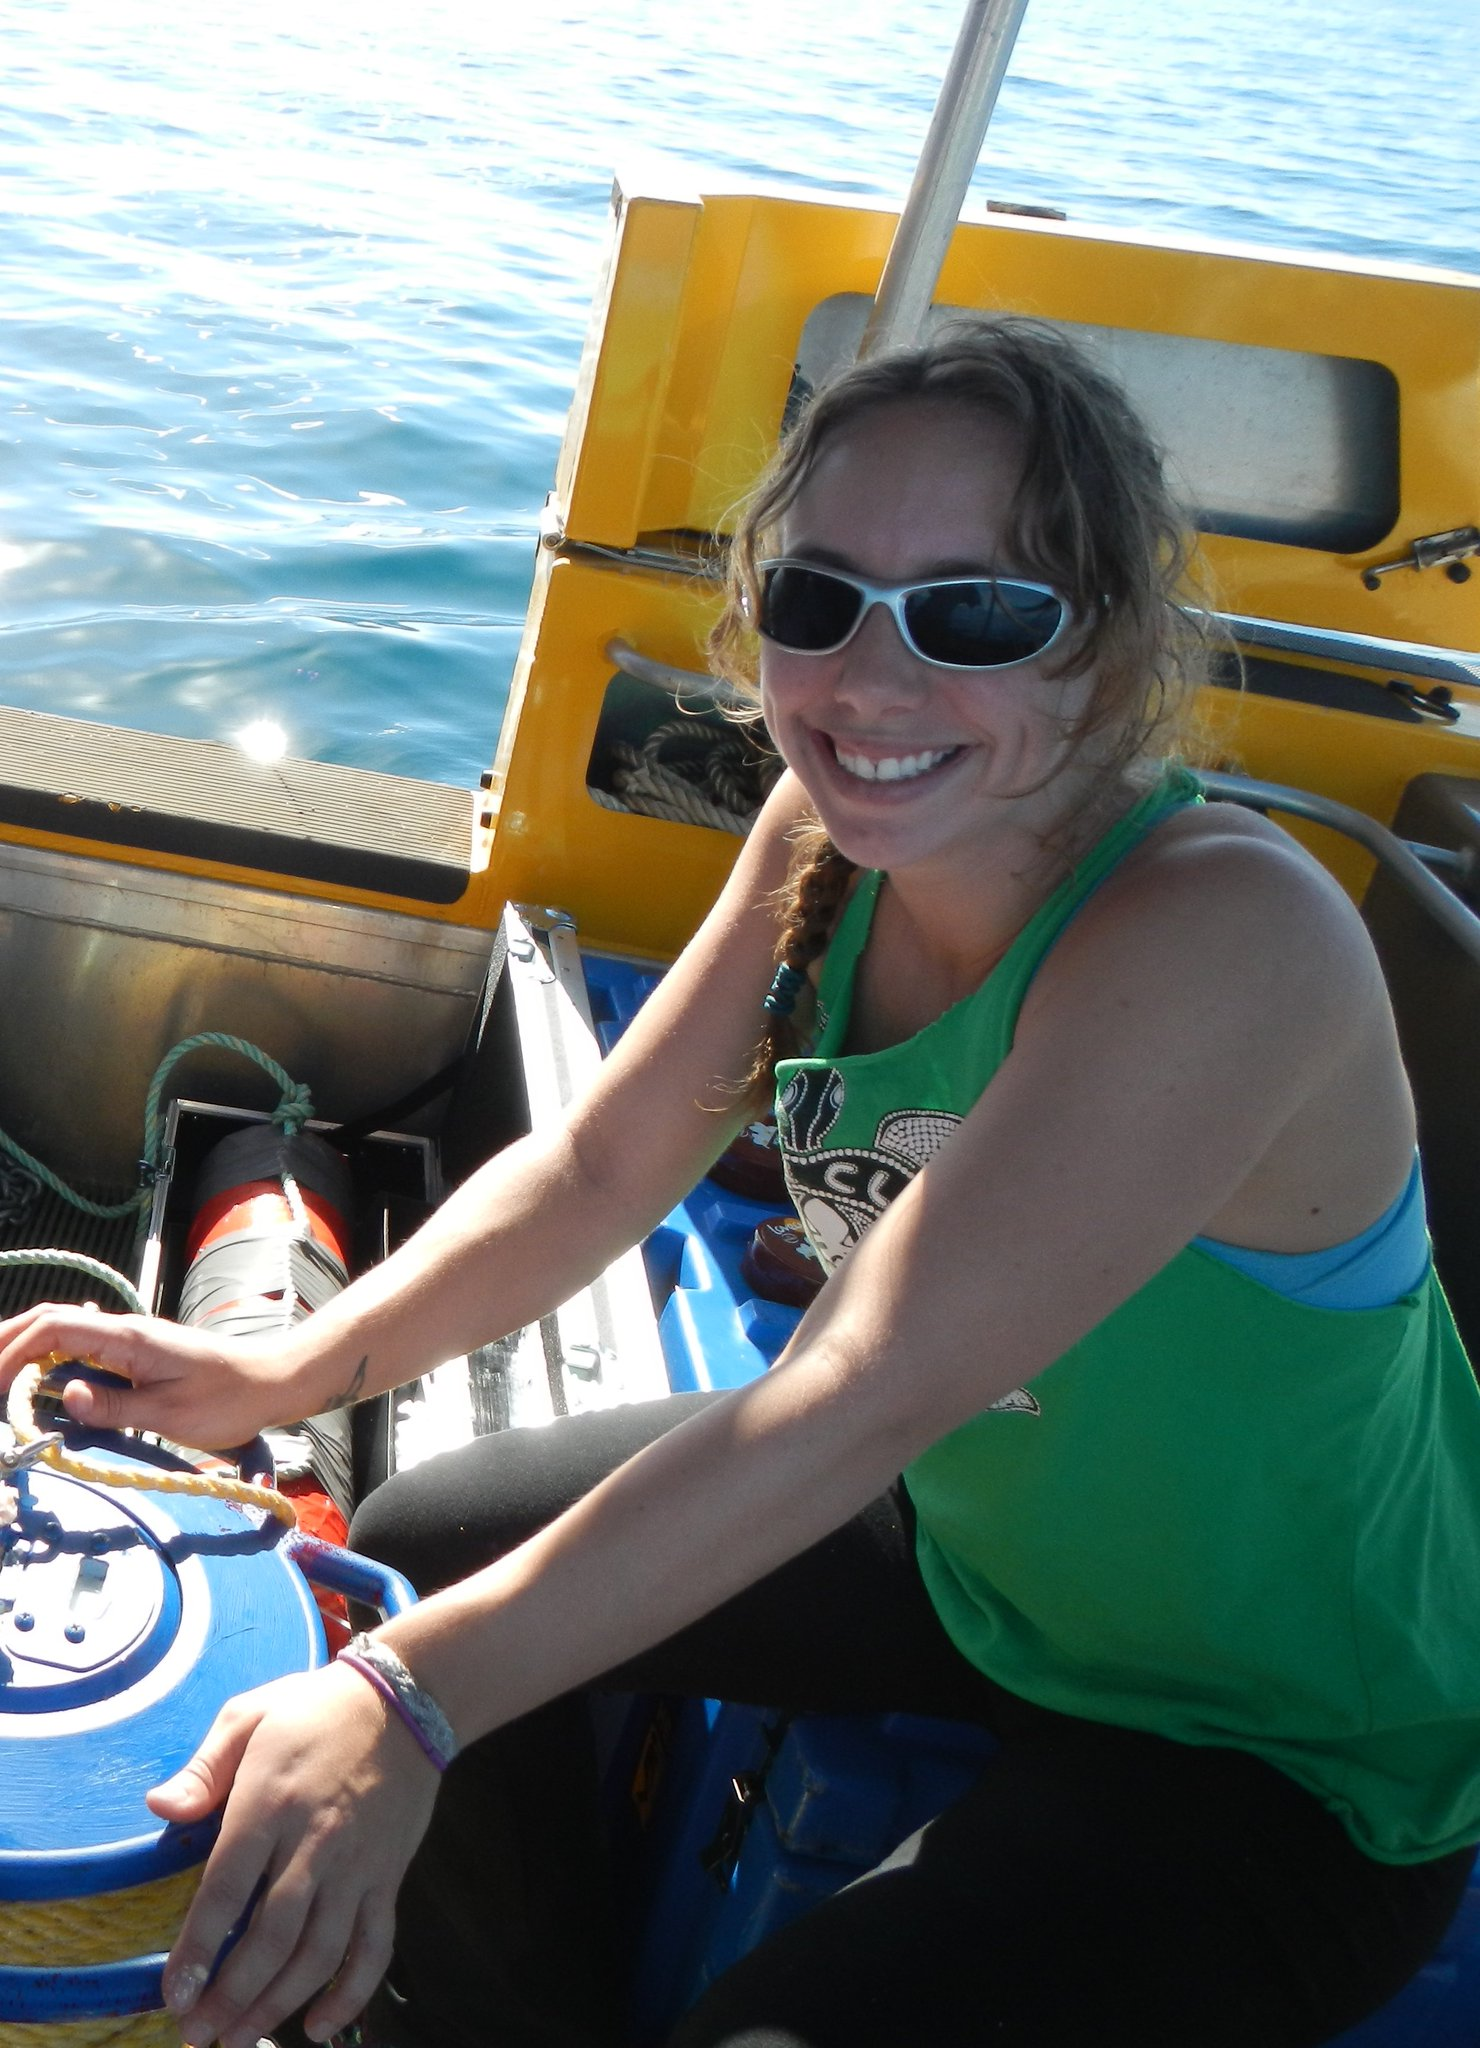 I'm an #actuallivingscientist who studies cultural learning in whale songs. I #DressLikeAWoman to go on boats and put out recorders. https://t.co/brw0jn0aDq